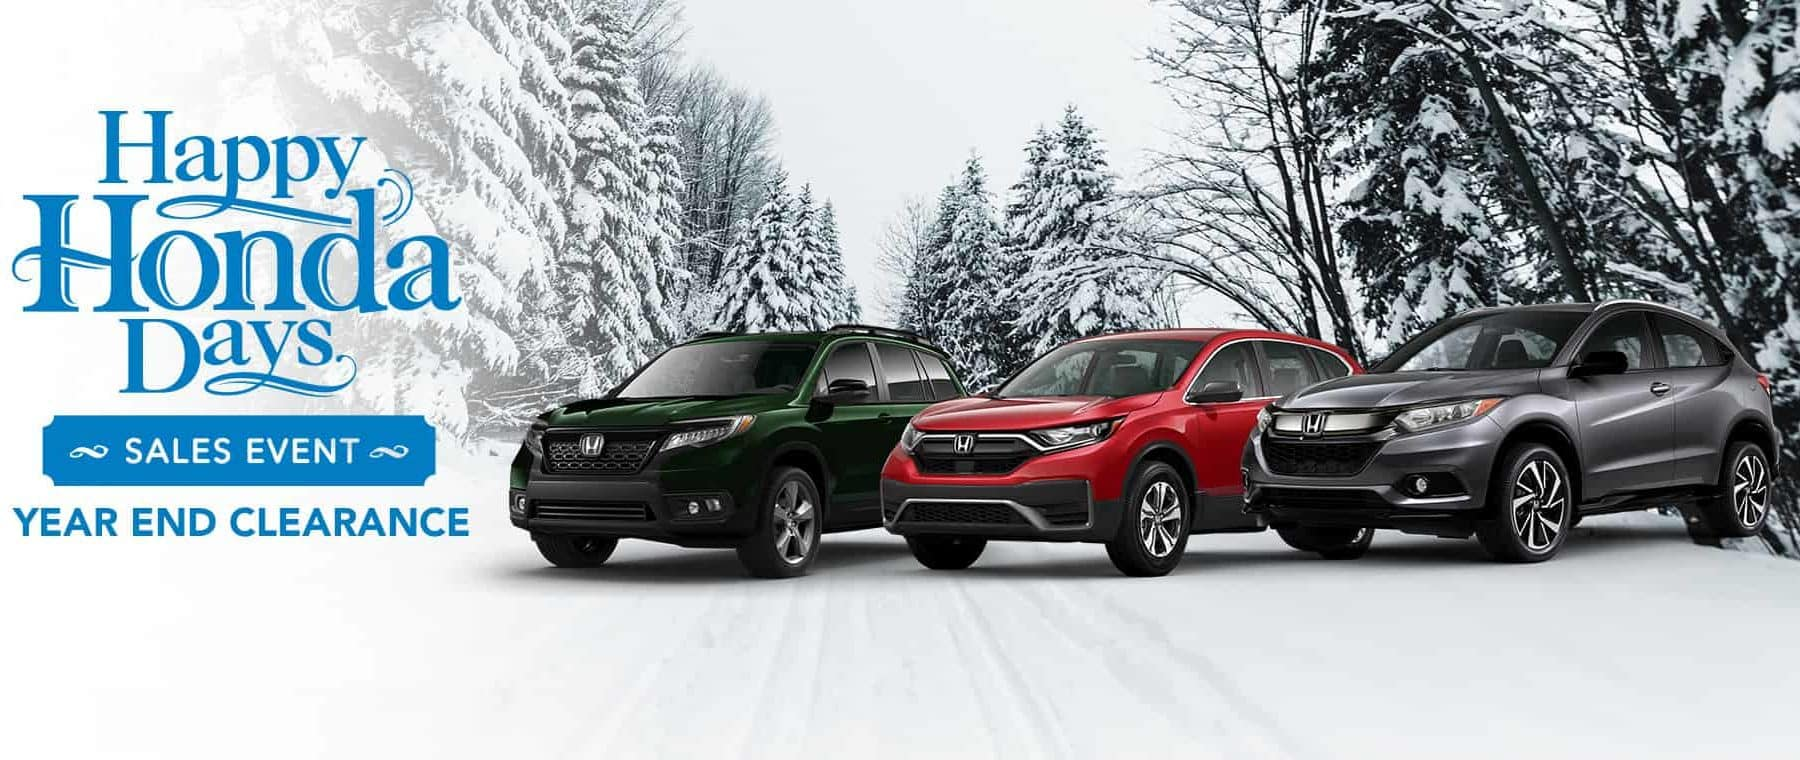 Happy Honda Days Year End Clearance